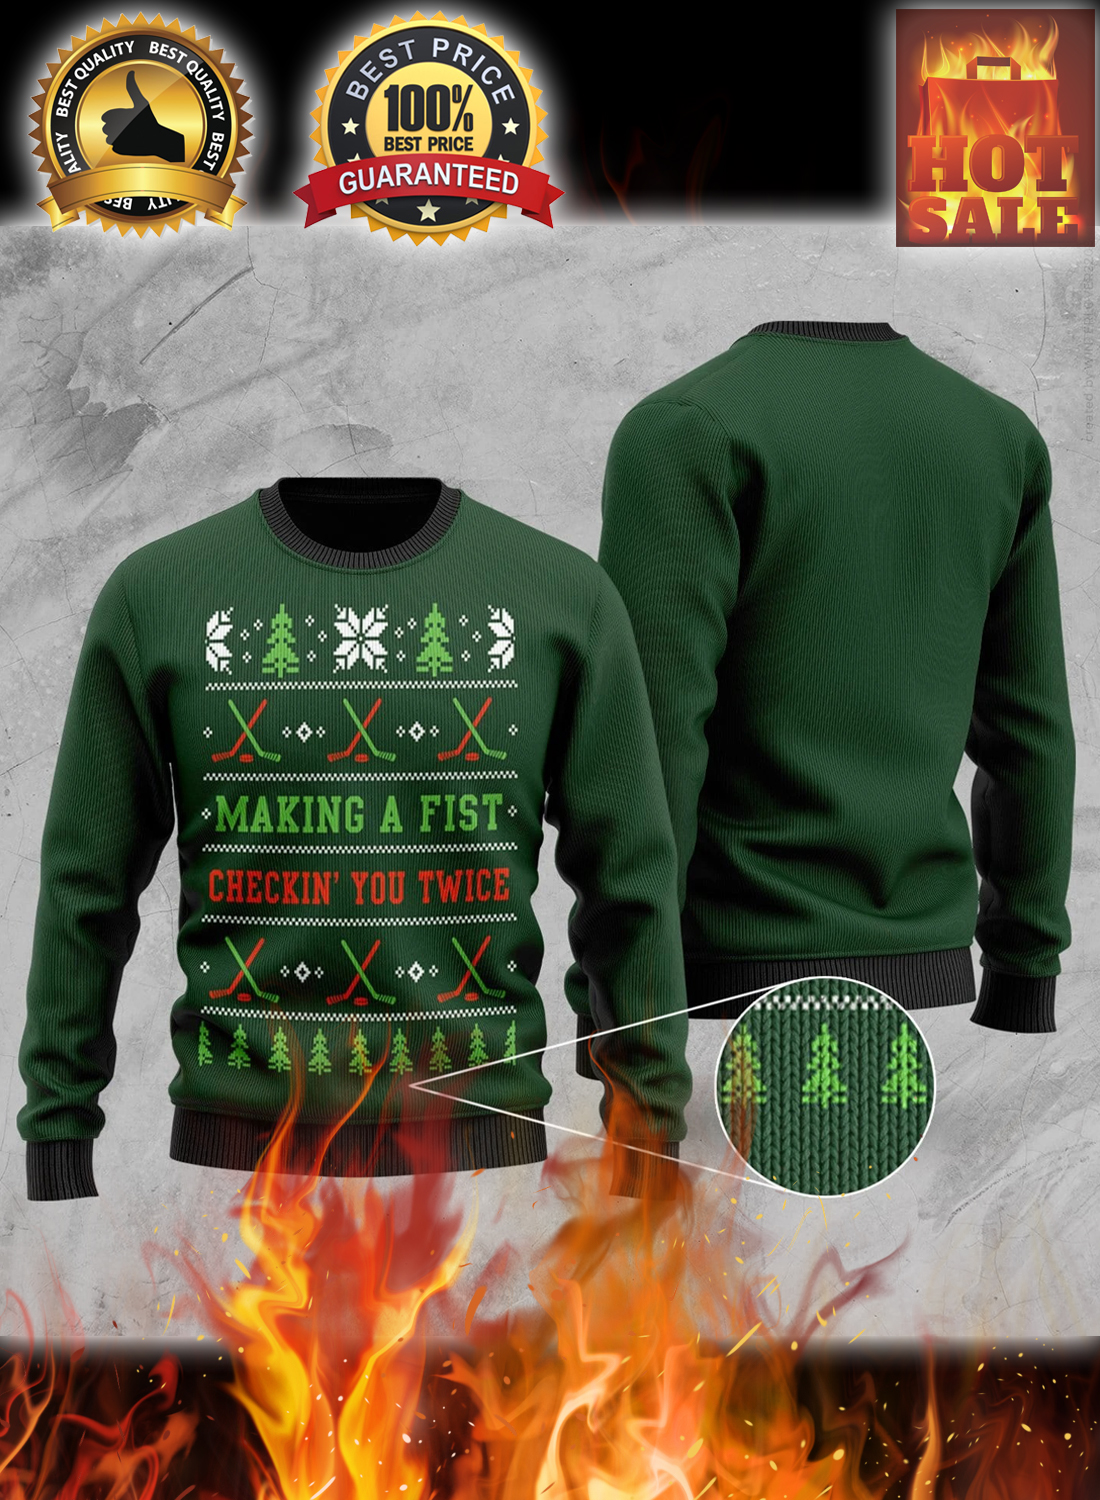 Hockey making a first checking you twice christmas sweater 2